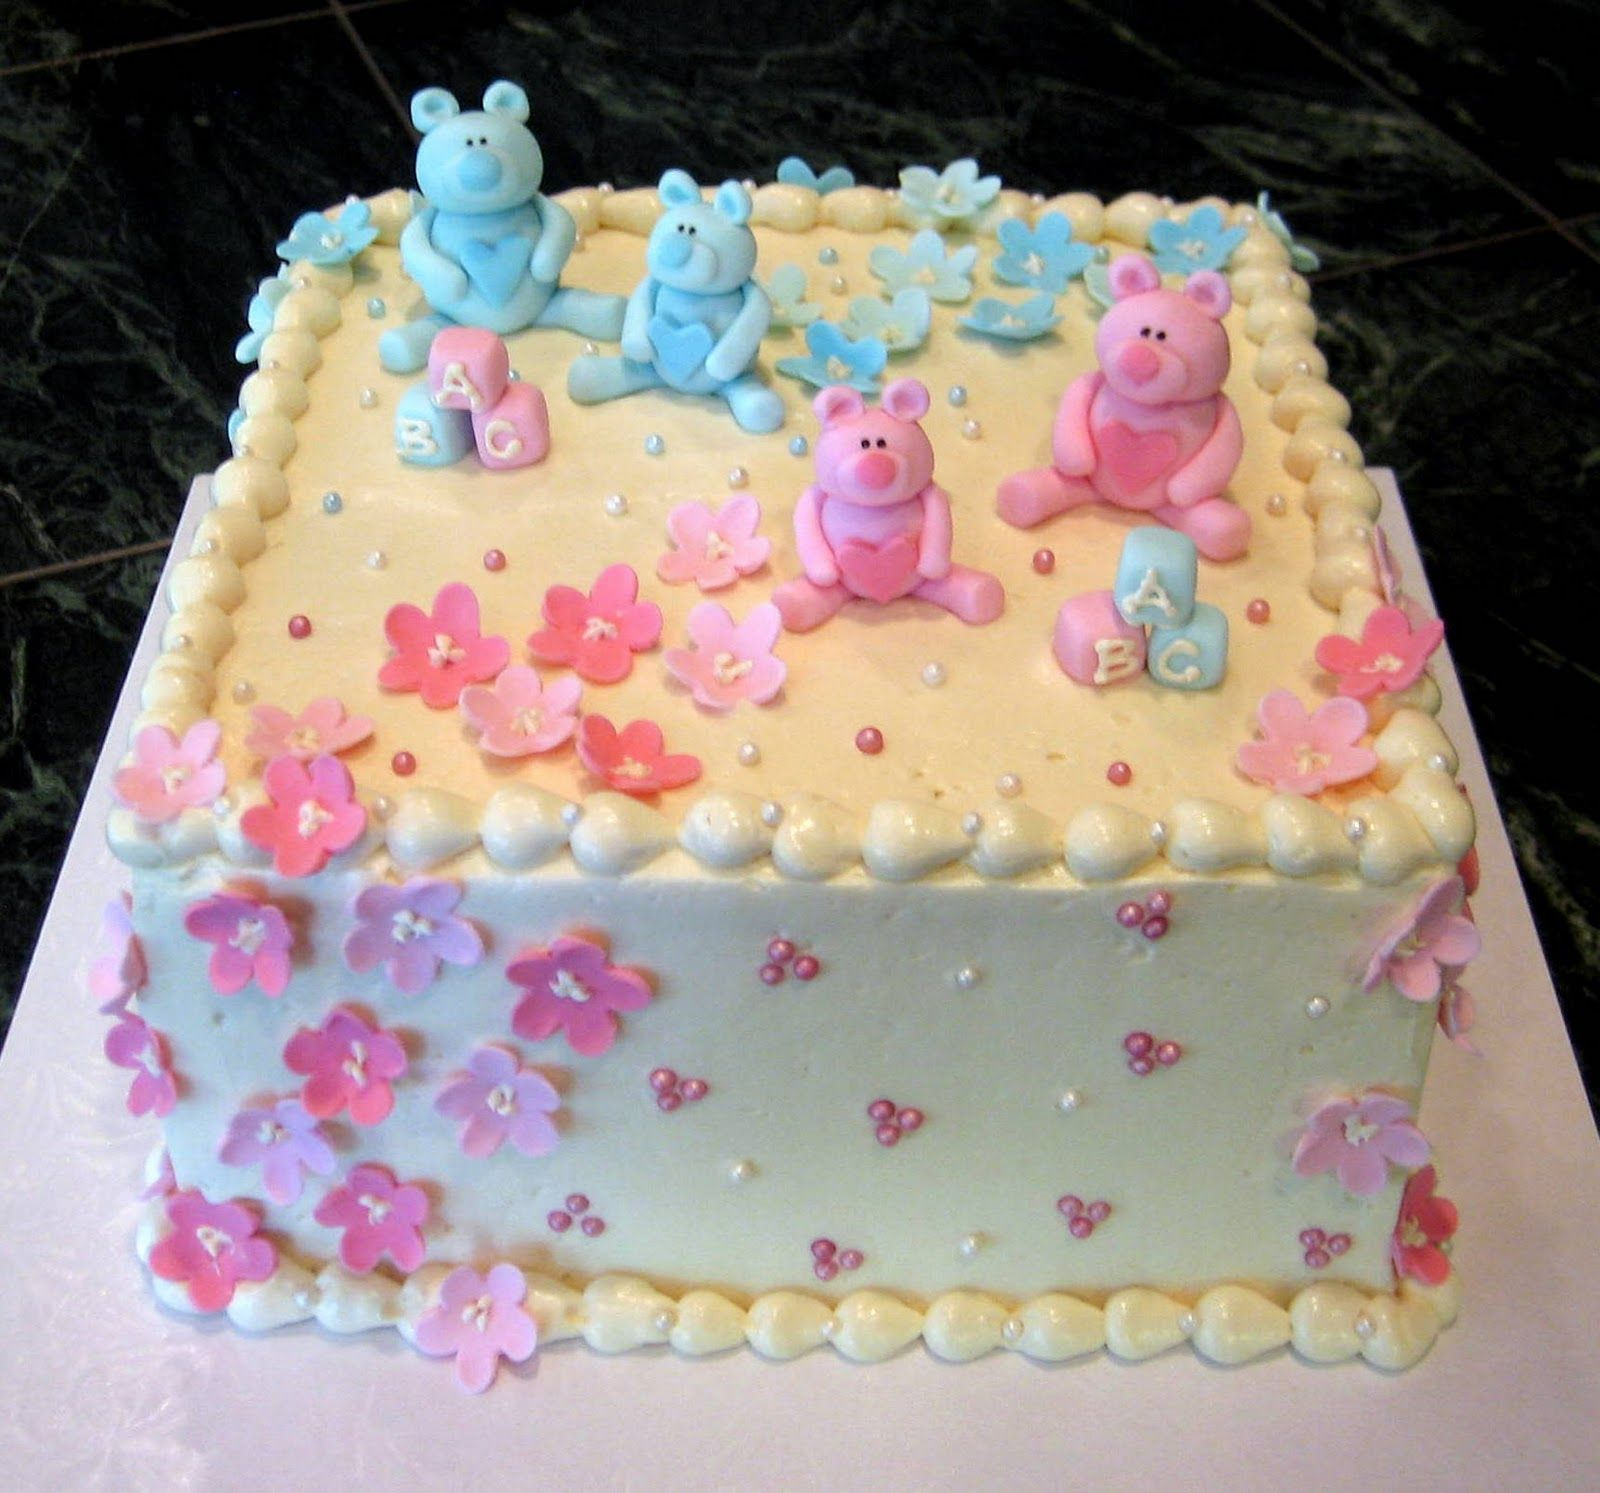 Jillicious Discoveries Three Purple Wedding Cakes: Pastel Baby Shower Cakes For Twin Boy And Girl